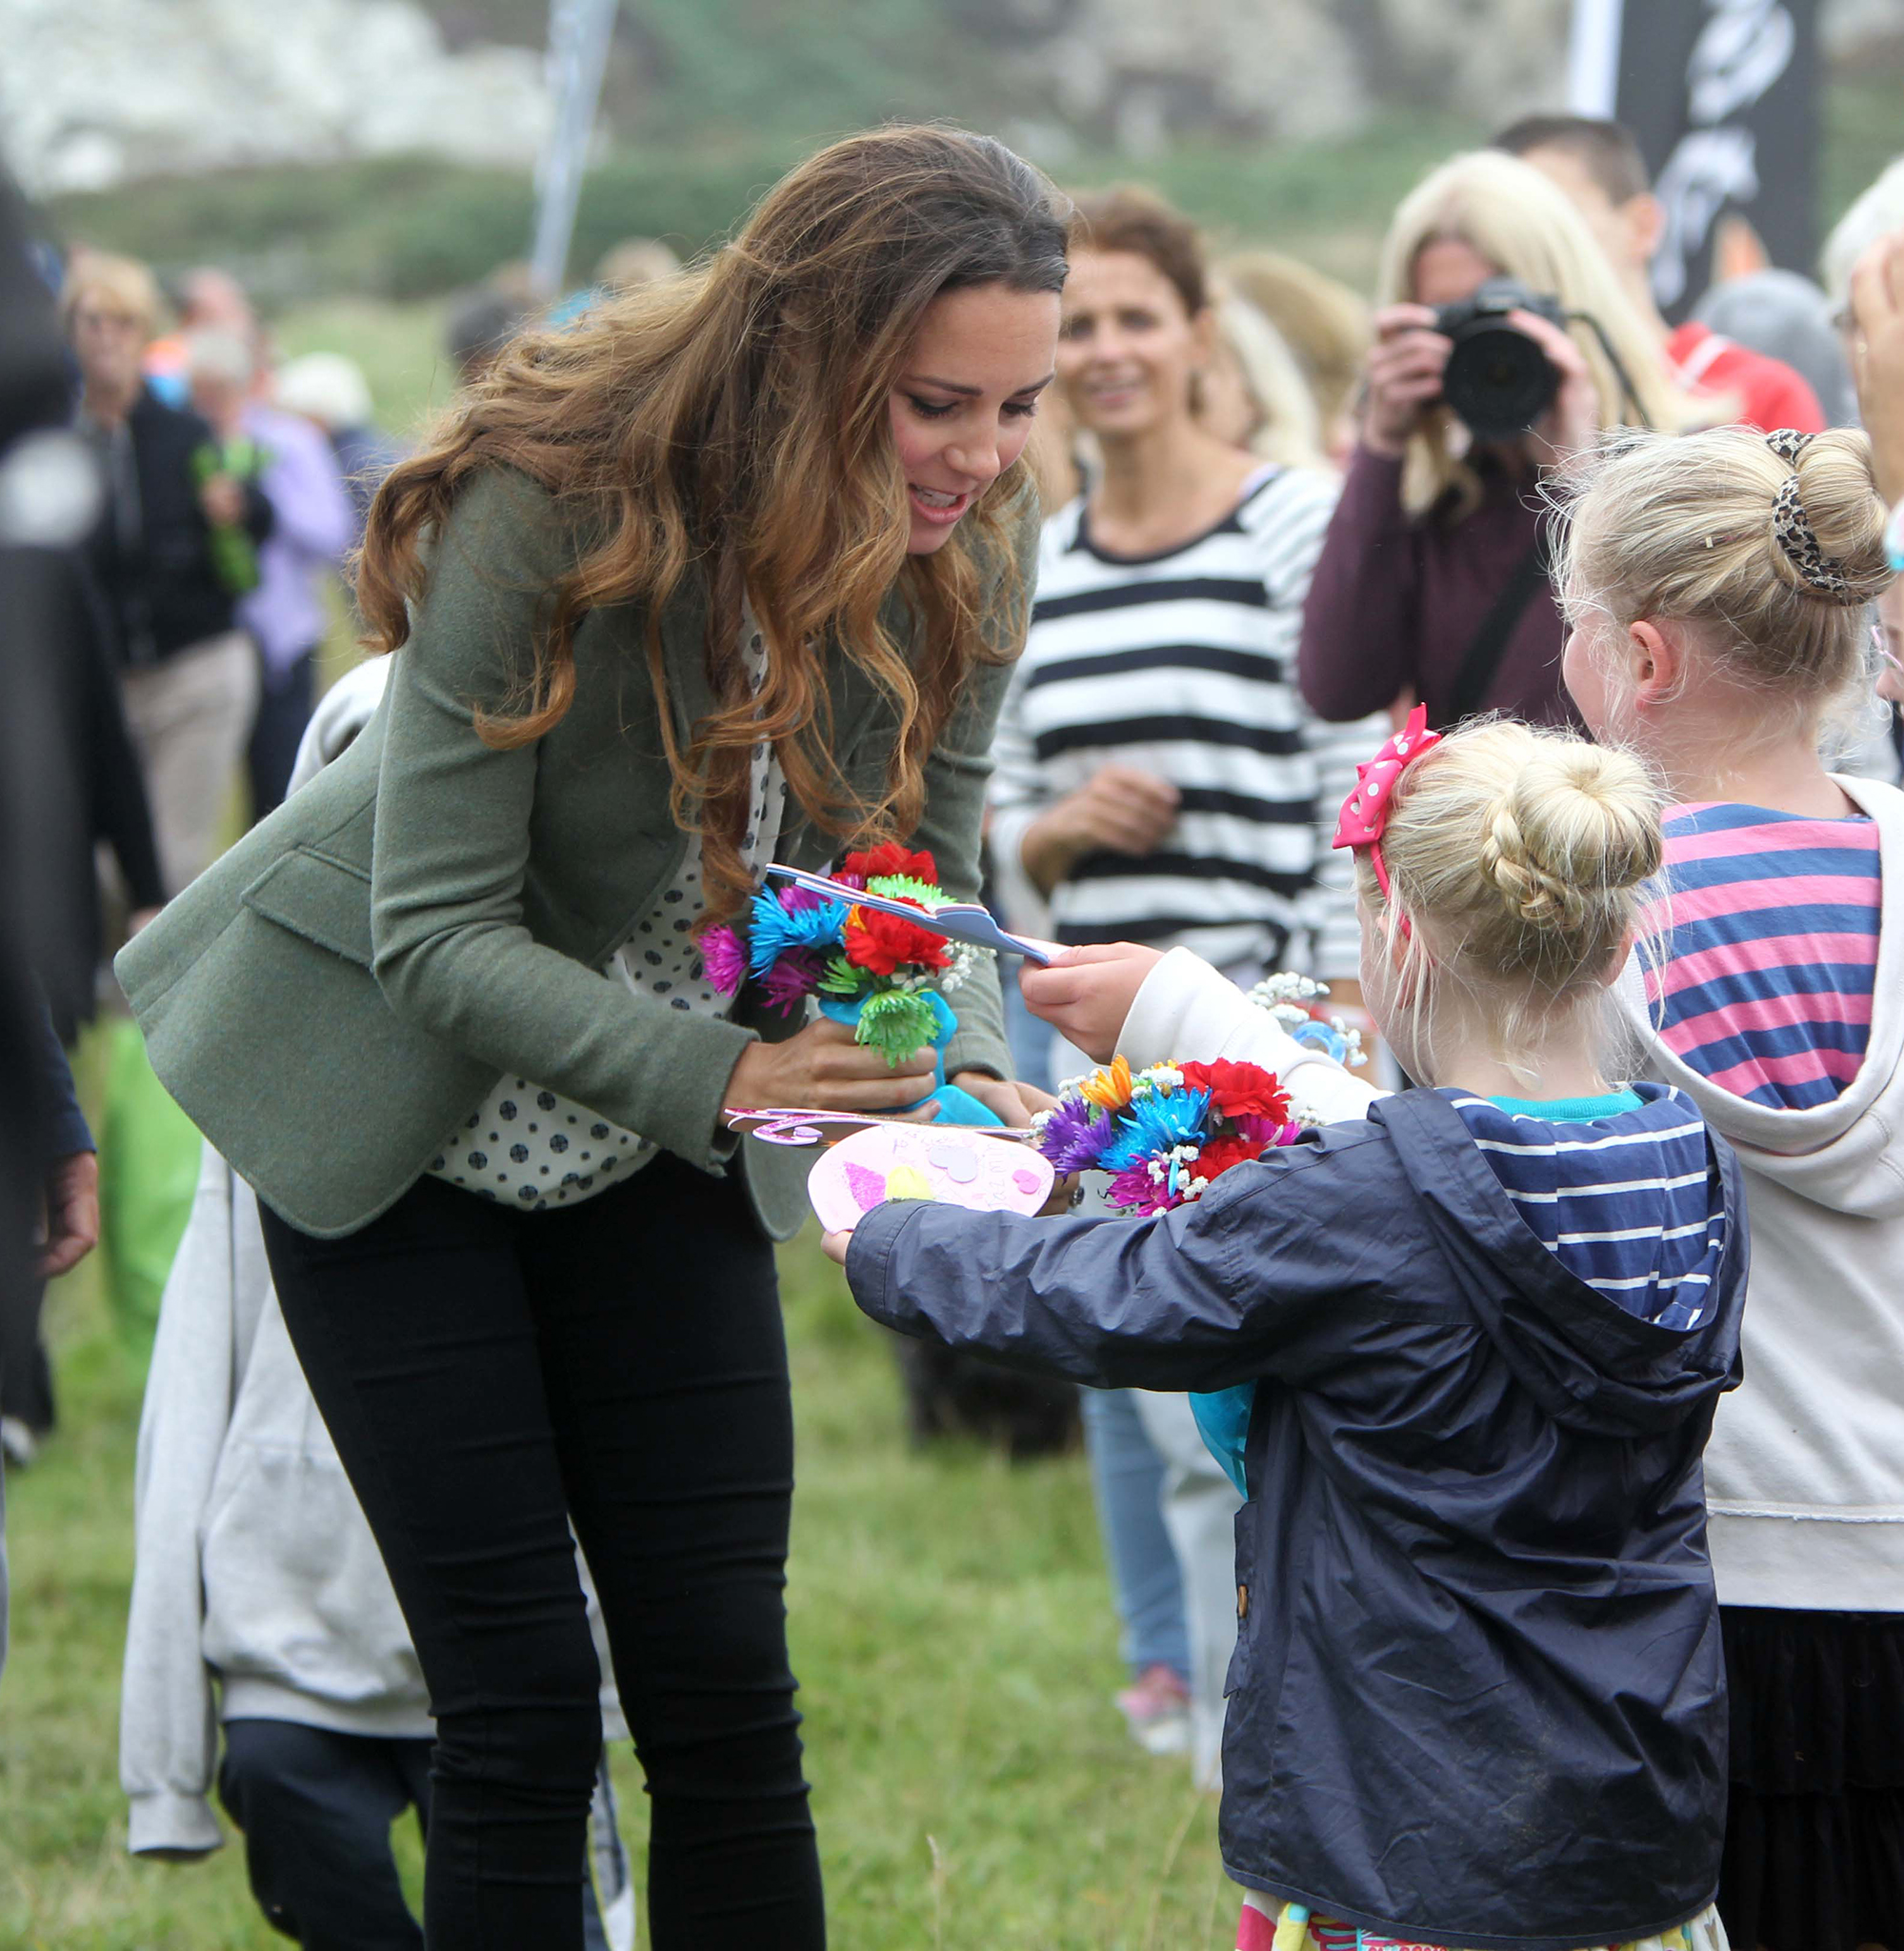 Kate Middleton greets some young fans (Getty Images)